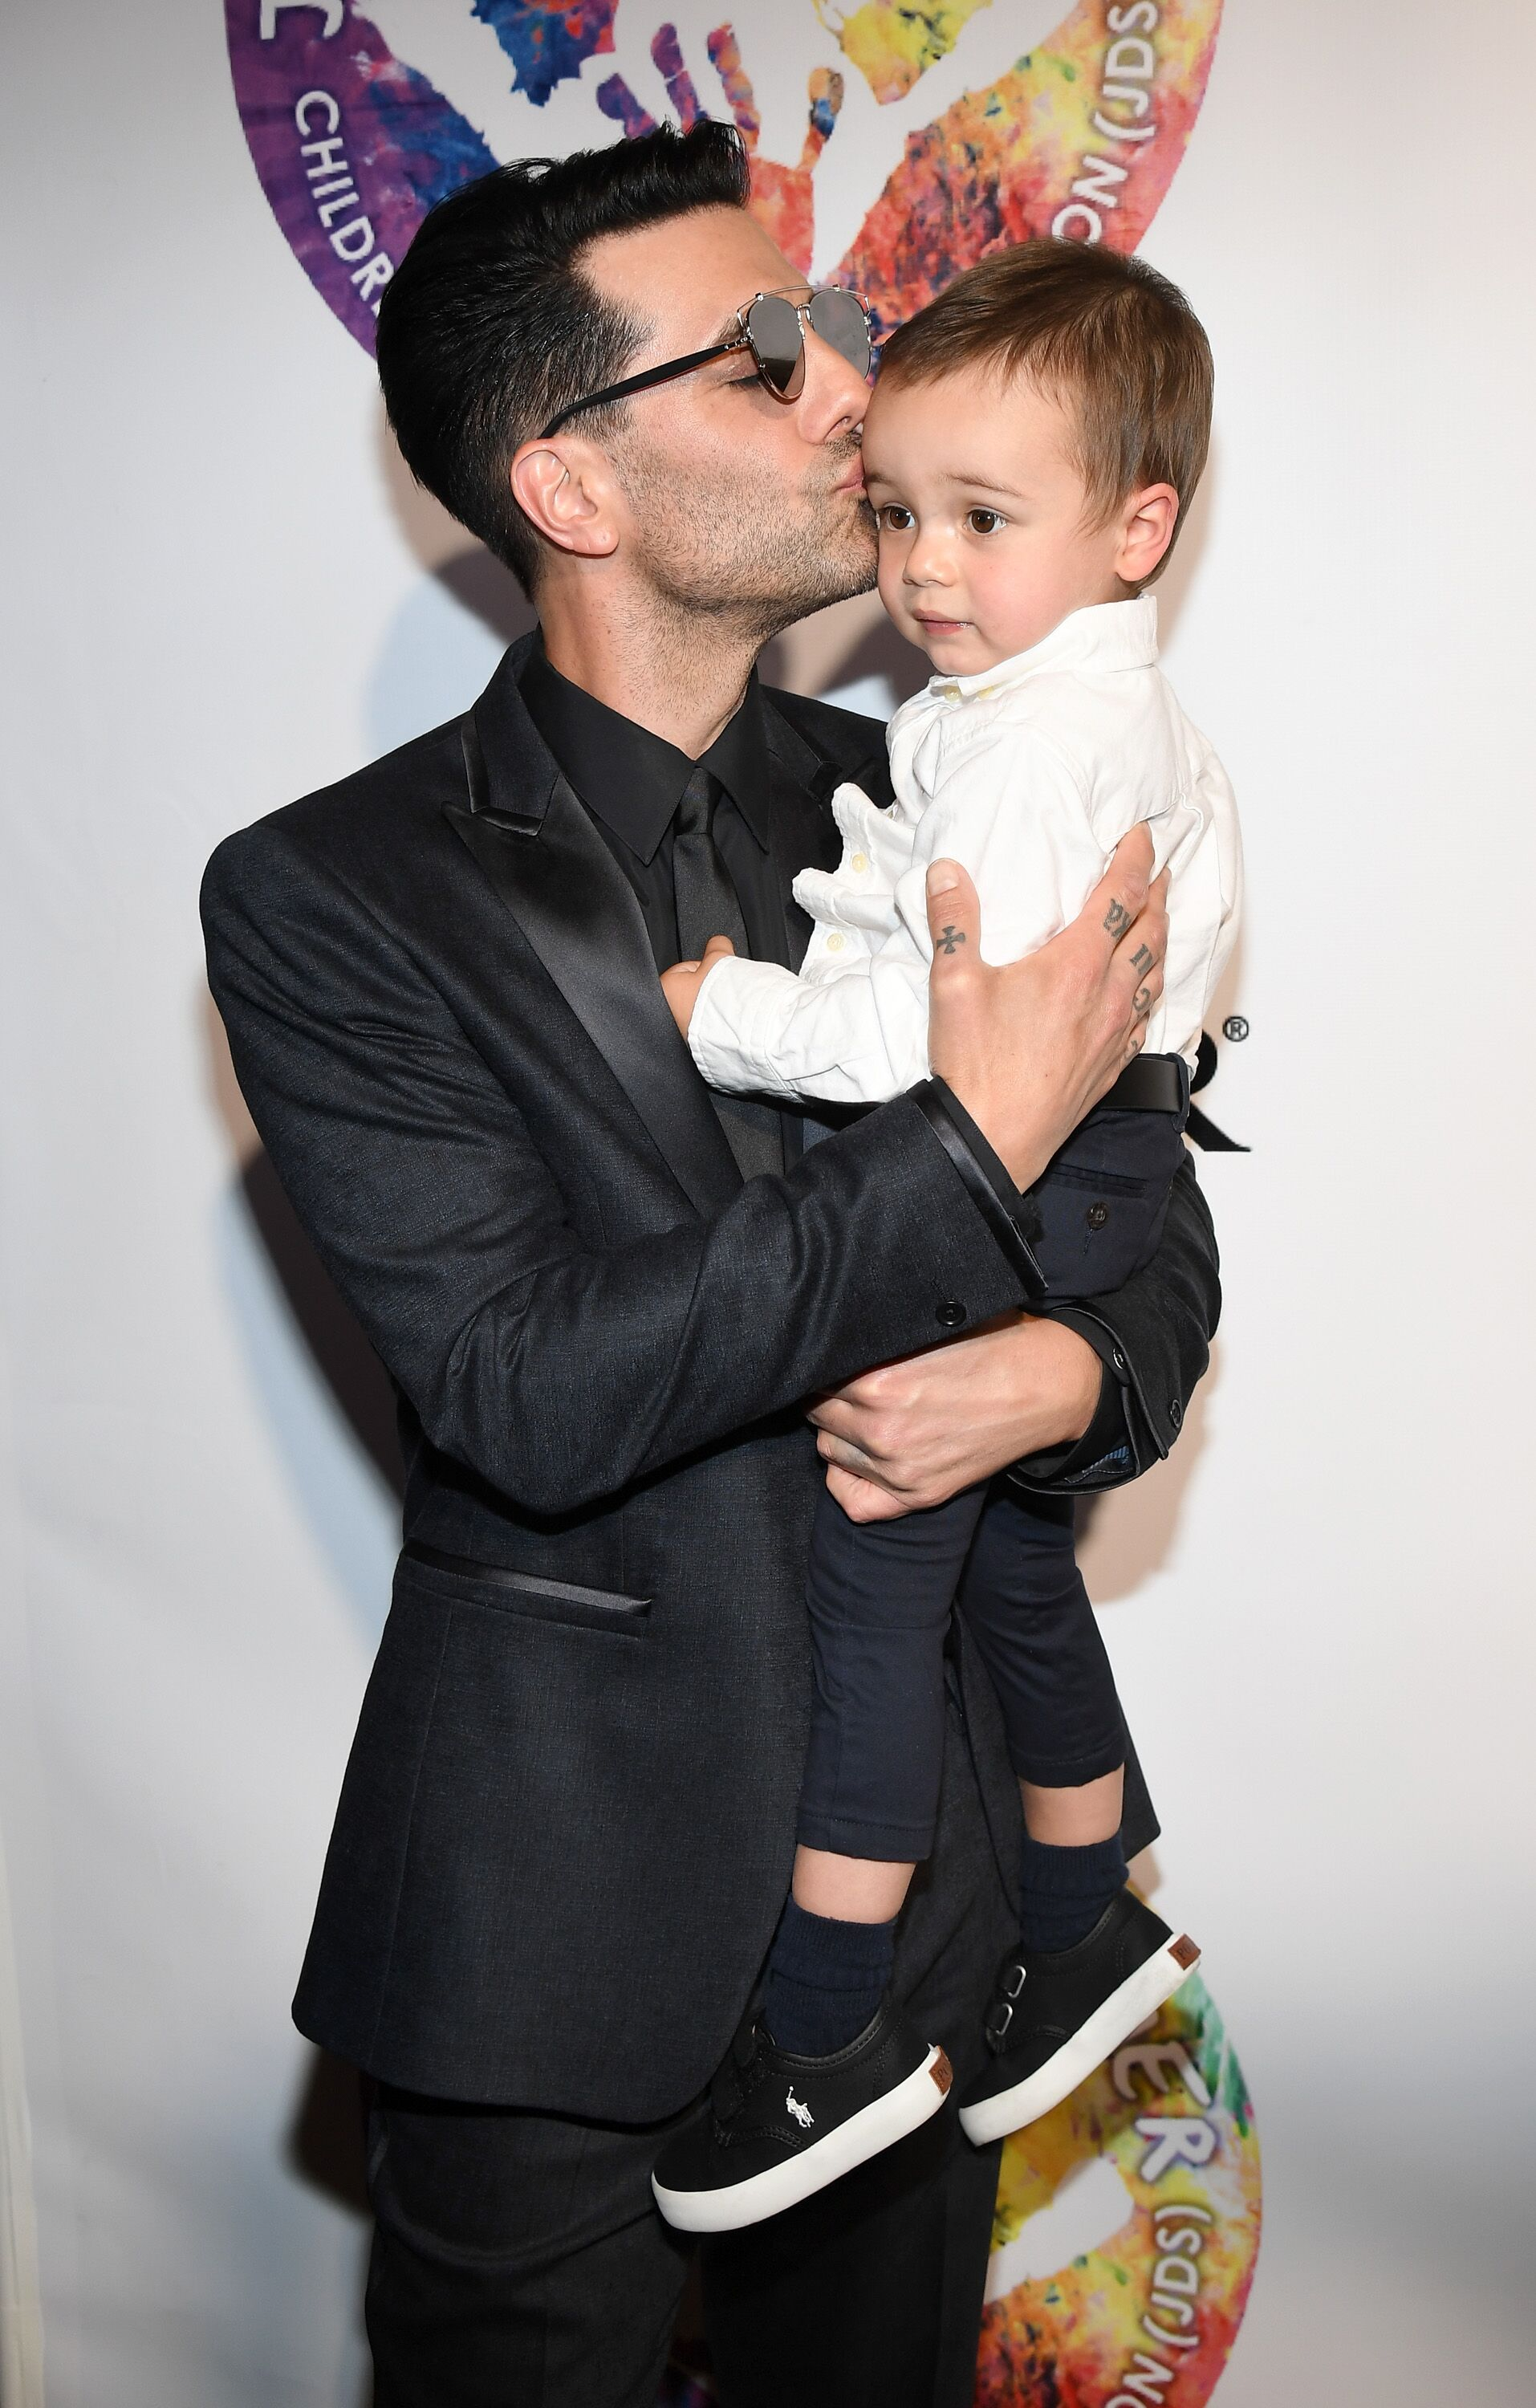 Criss Angel with his son Johnny Crisstopher at Criss Angel's HELP (Heal Every Life Possible) charity event in Las Vegas in 2016 | Source: Getty Images